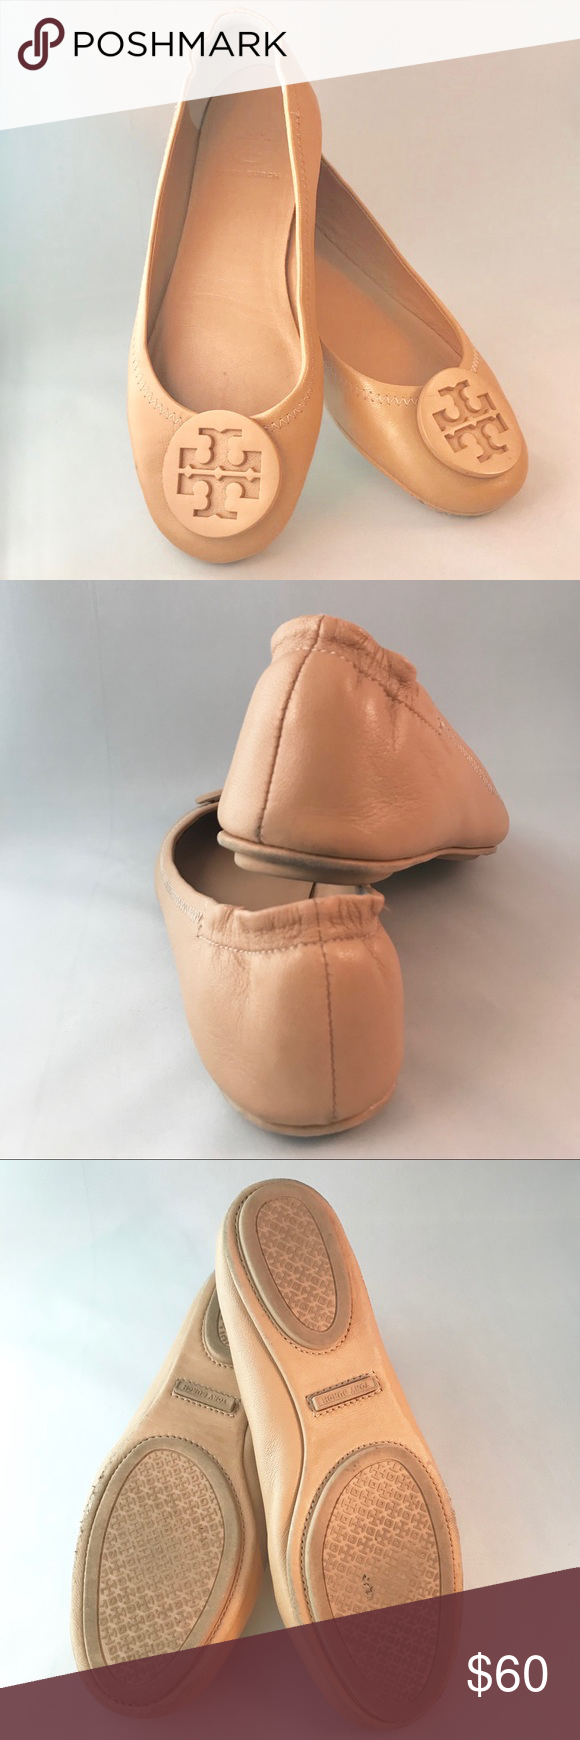 94df568a5 Tory Burch Women s Minnie Travel Ballet Flats 5.0 Tory Burch Women s Minnie  Travel Ballet Flats Color  Goan Sand Size  5.0 Worn 5-10 times.